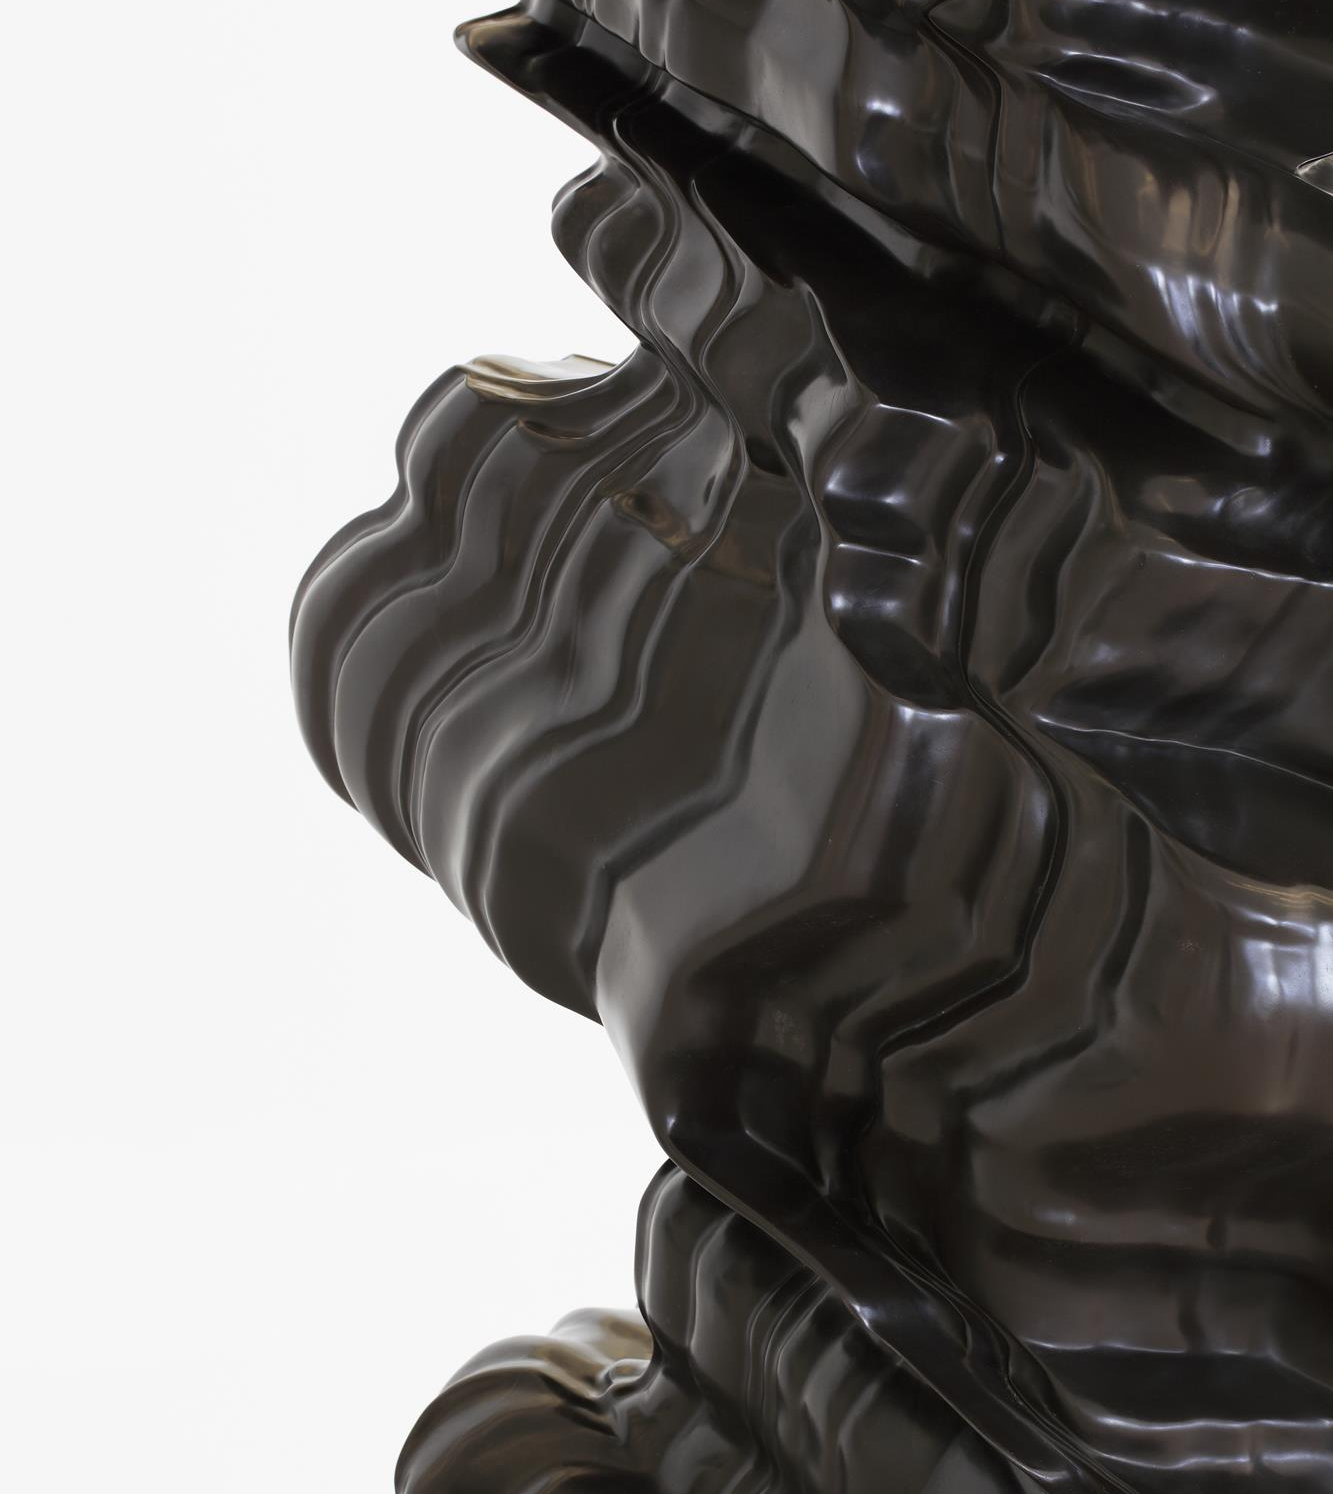 Tony Cragg, Ever After (detail), 2006, bronze, photo Michael Richter